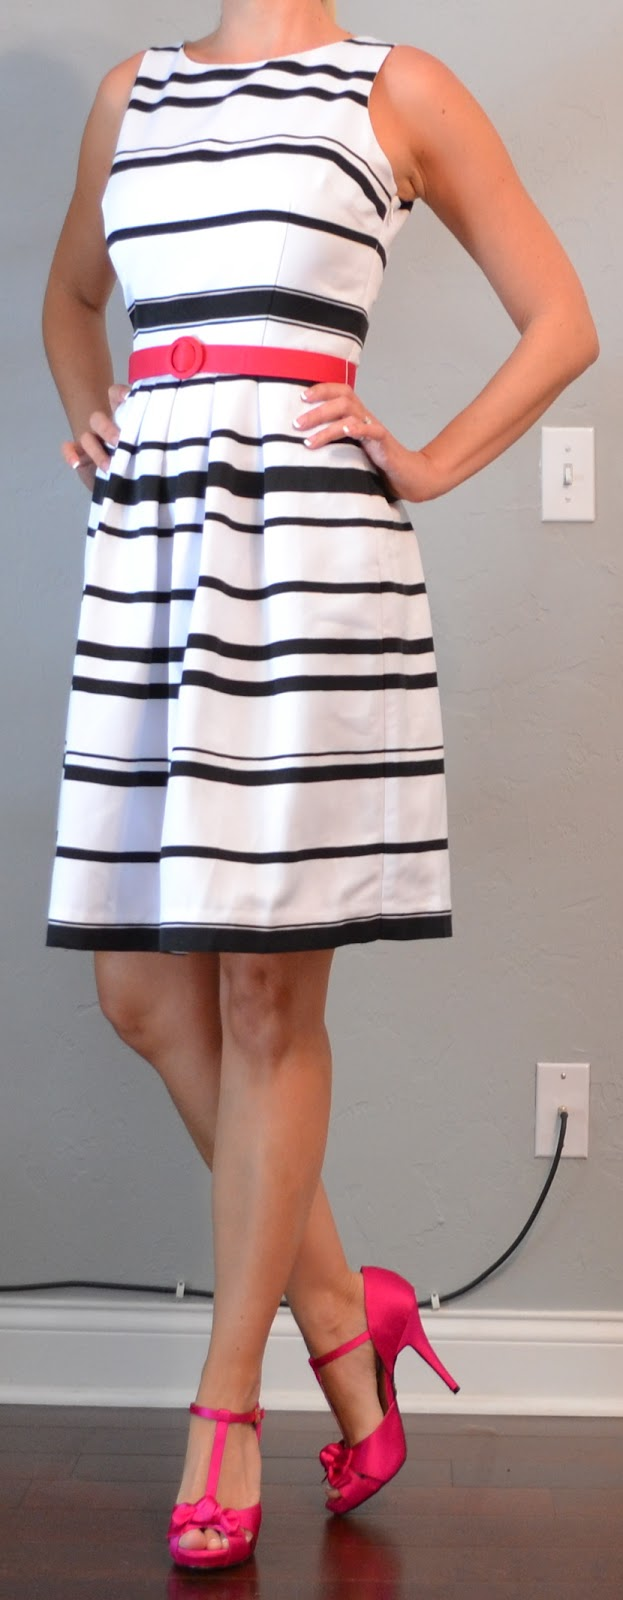 Outfit Post Black And White Striped Dress With Pink Belt